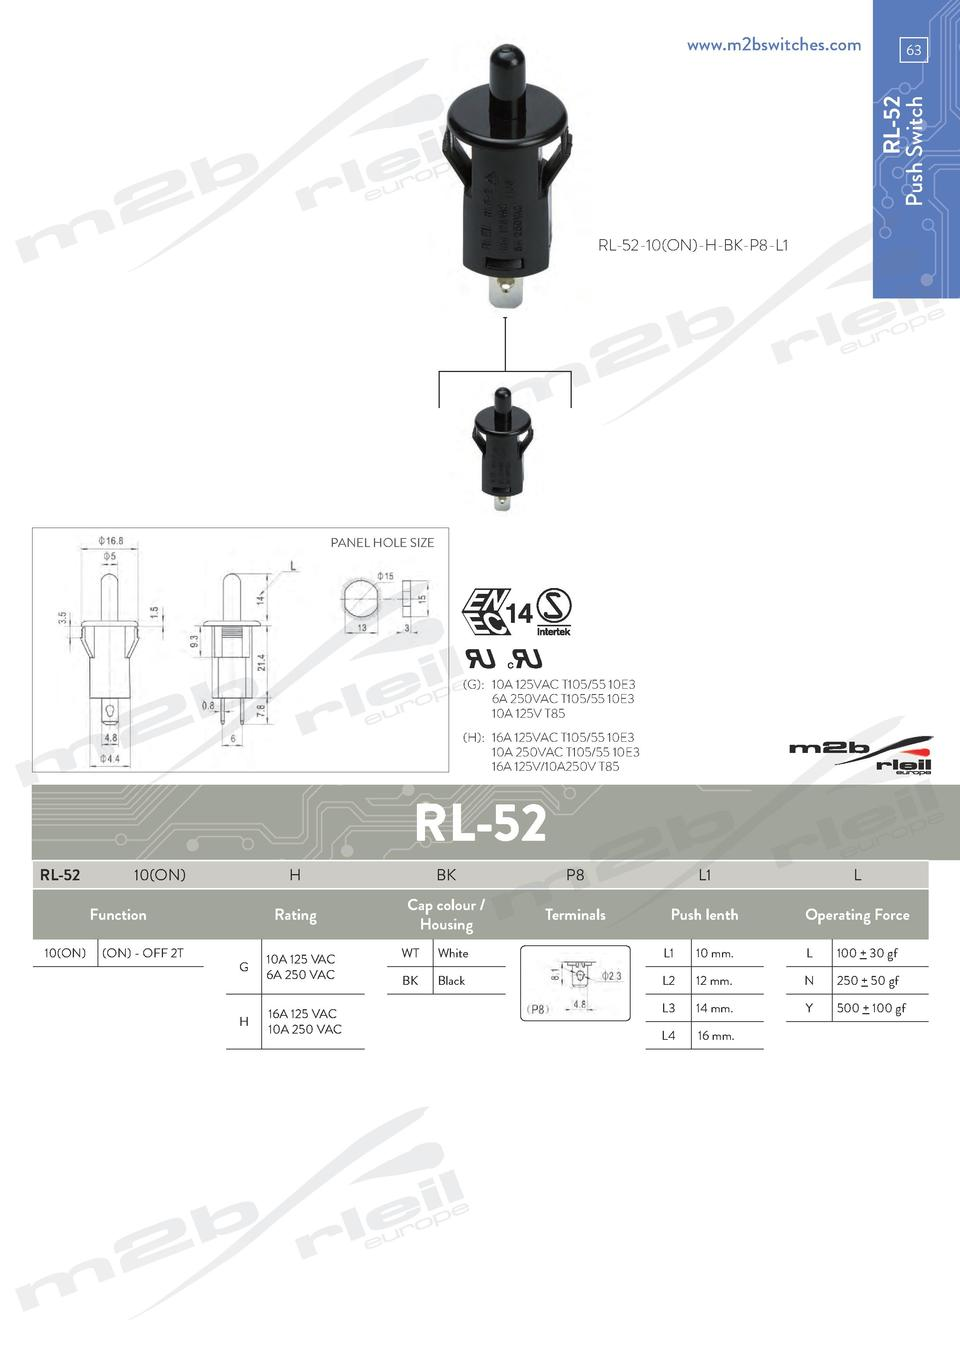 www.m2bswitches.com  RL-52 Push Switch  63  RL-52-10 ON -H-BK-P8-L1  PANEL HOLE SIZE   G     10A 125VAC T105 55 10E3   6A ...